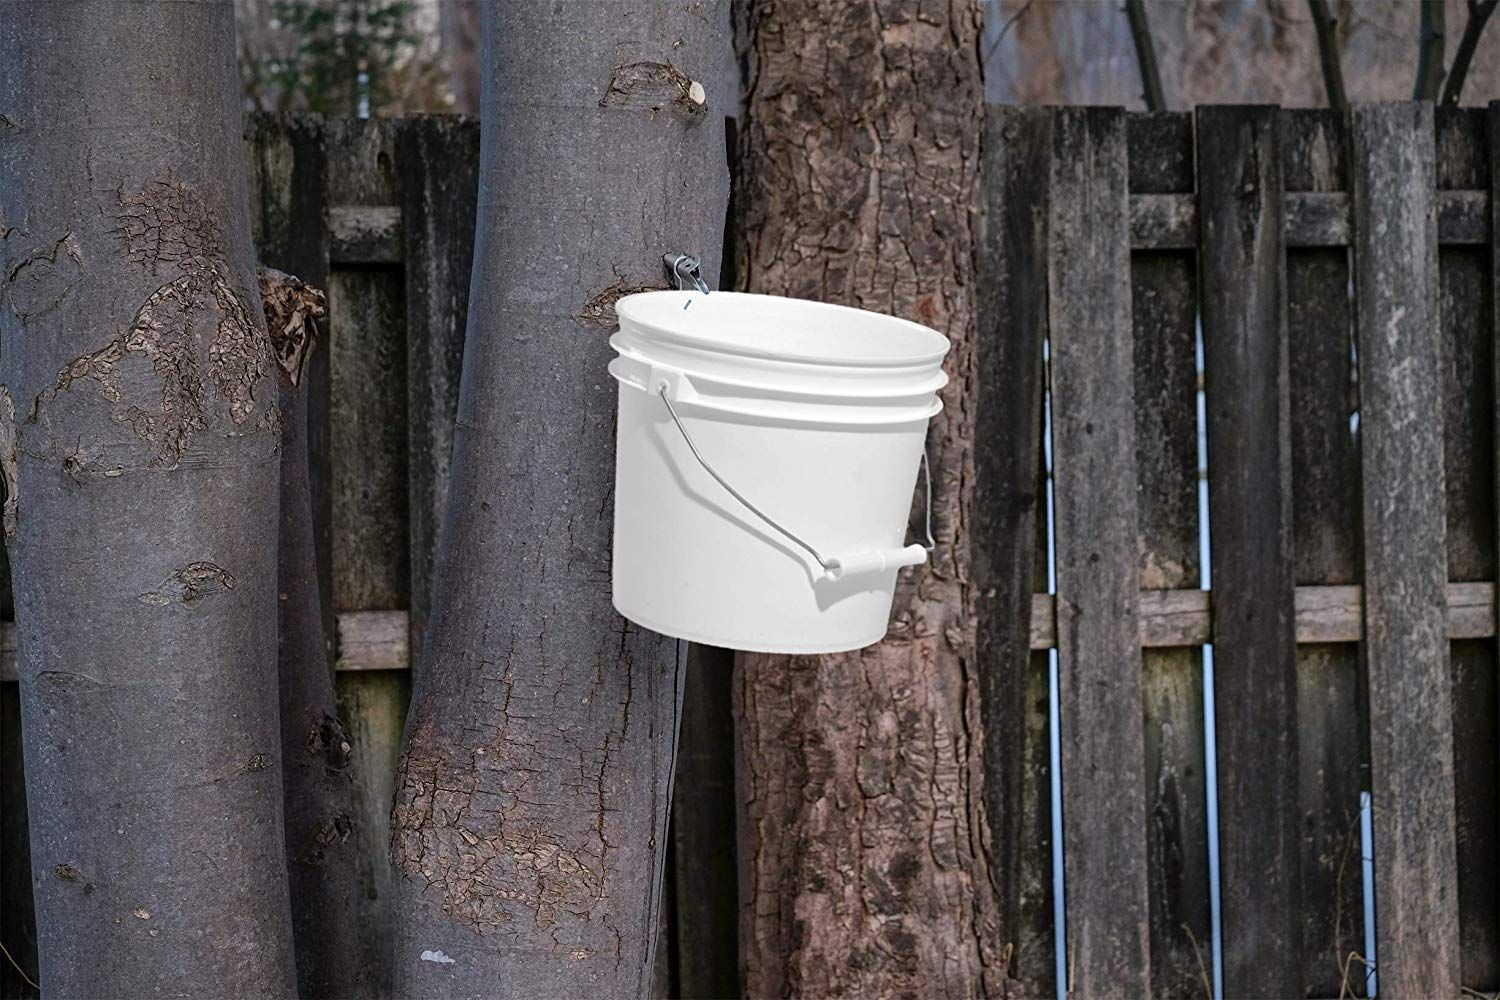 These 1 Gallon Pails Are Built Sturdy With A Wire Bail And Plastic Handgrip For Ease And Comfort Perfect For Your Maple Syrup Harvesting Th Gallon Pail Maple